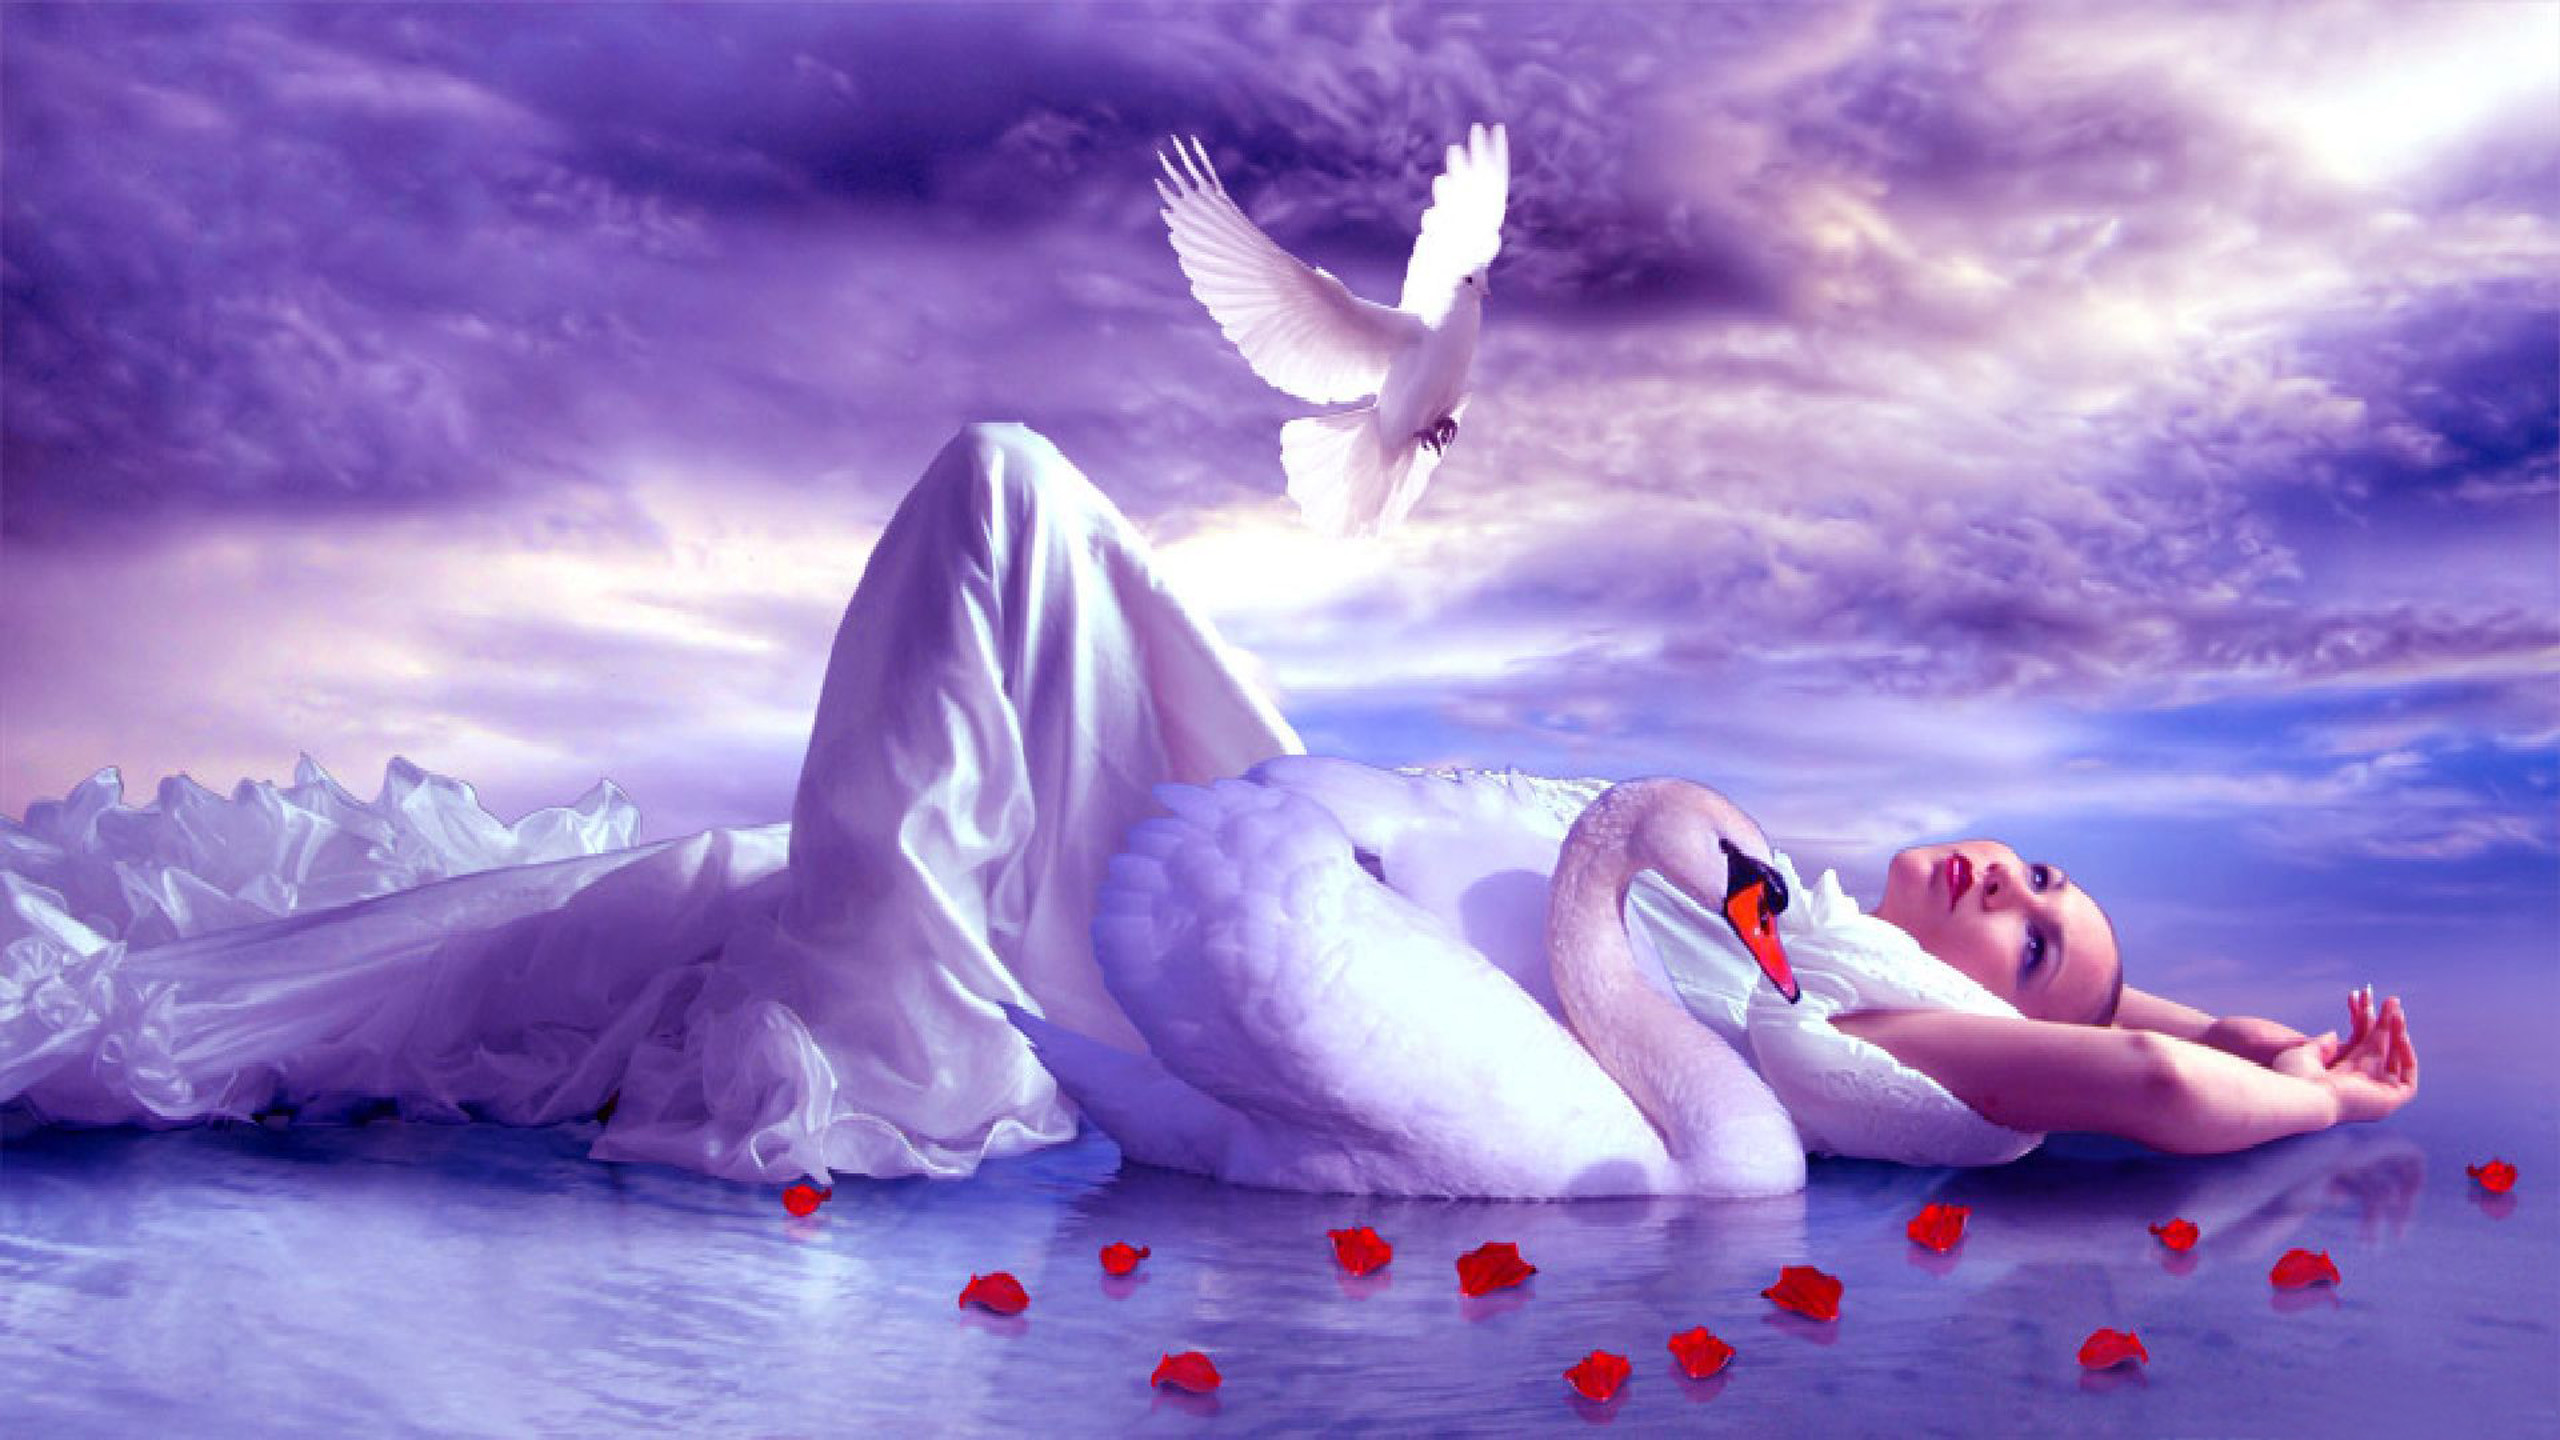 Girl Lake Accompaniment Of A Swan And Golub Sky With White Clouds Red Rose  Sheet Fantasy Hd Wallpaper : Wallpapers13.com